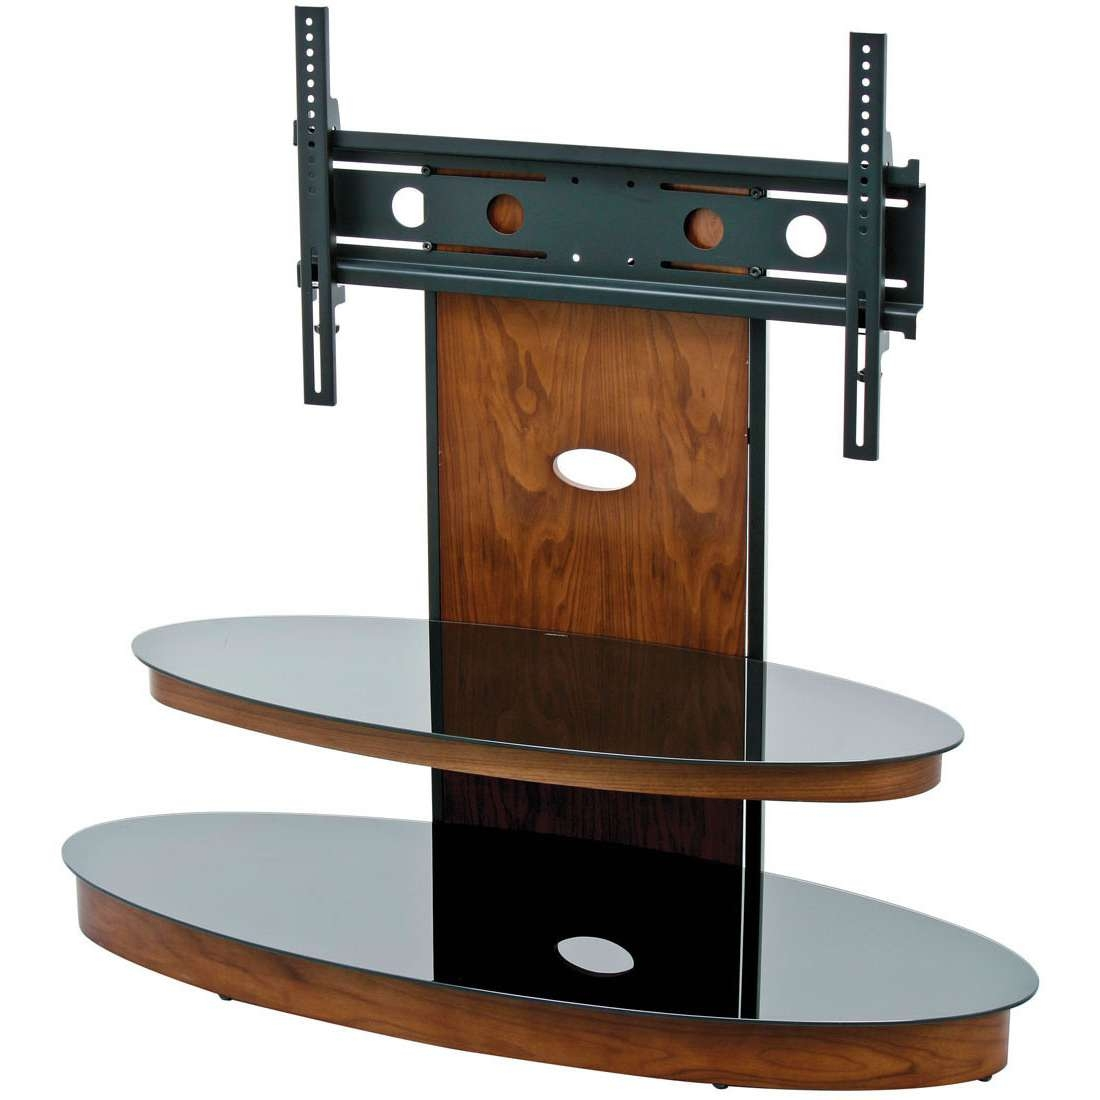 Tv : Bghlq Beautiful Cantilever Tv Stands Mountright Cantilever Regarding Cantilever Glass Tv Stands (View 8 of 20)